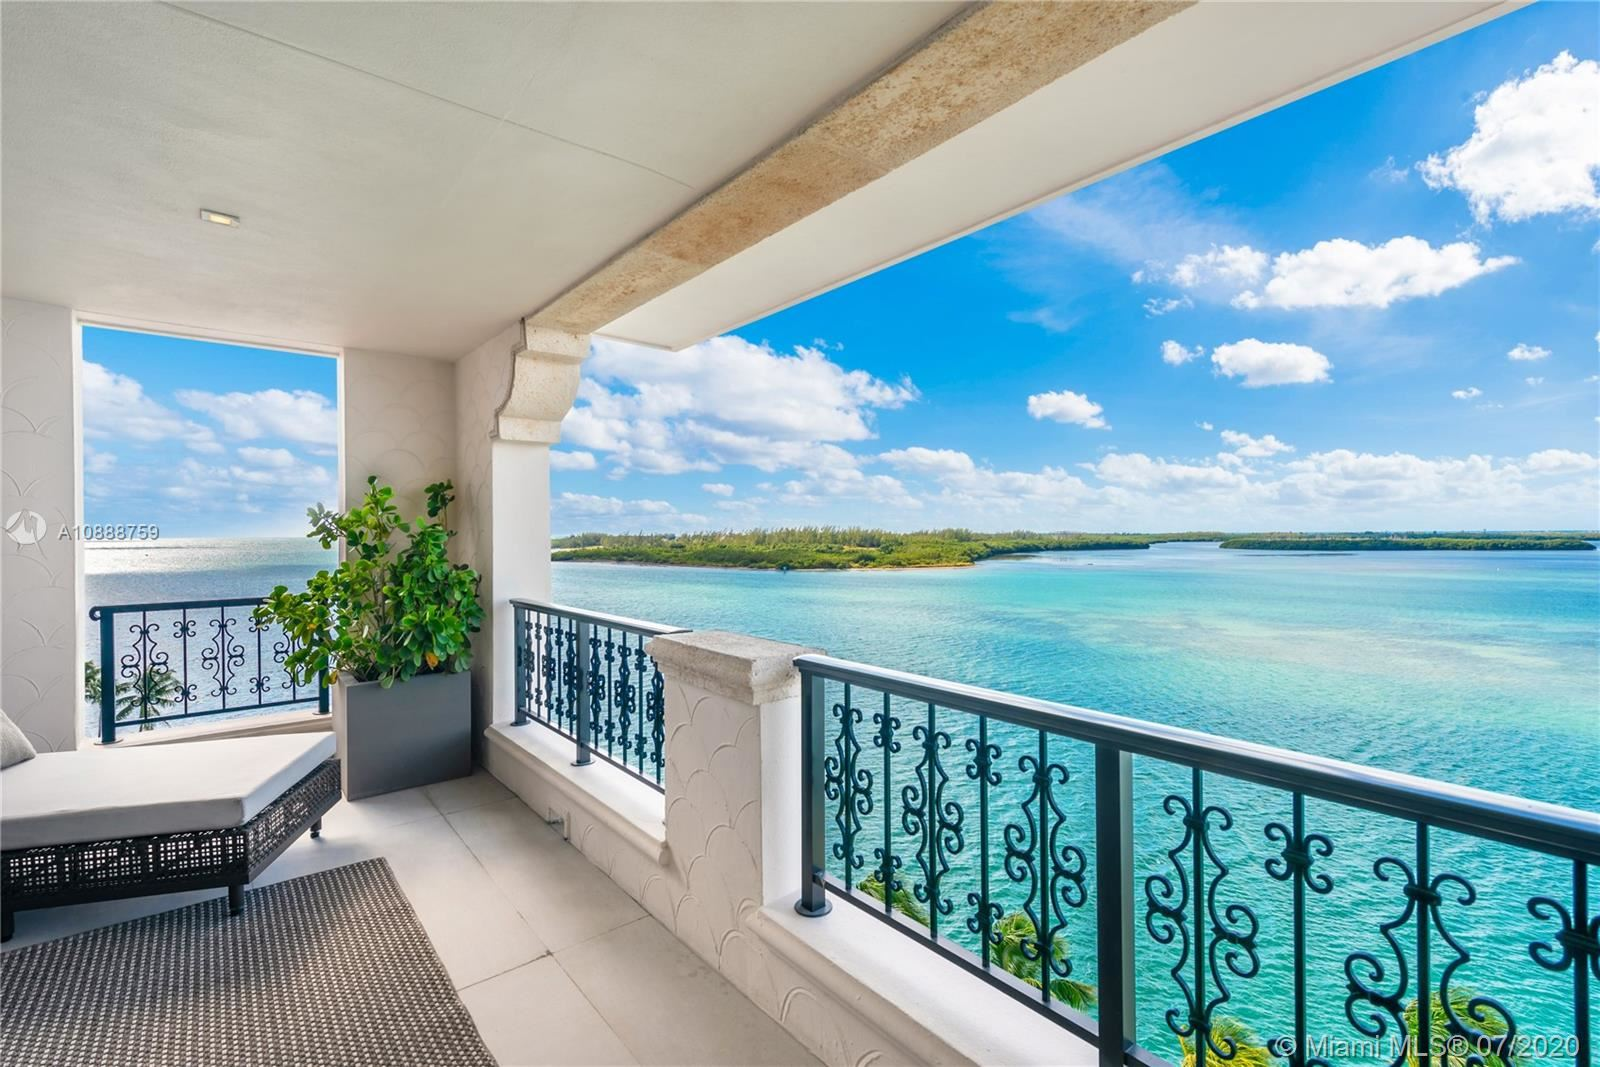 Photo 51 of Listing MLS a10888759 in 5282 Fisher Island Dr #5282 Miami FL 33109